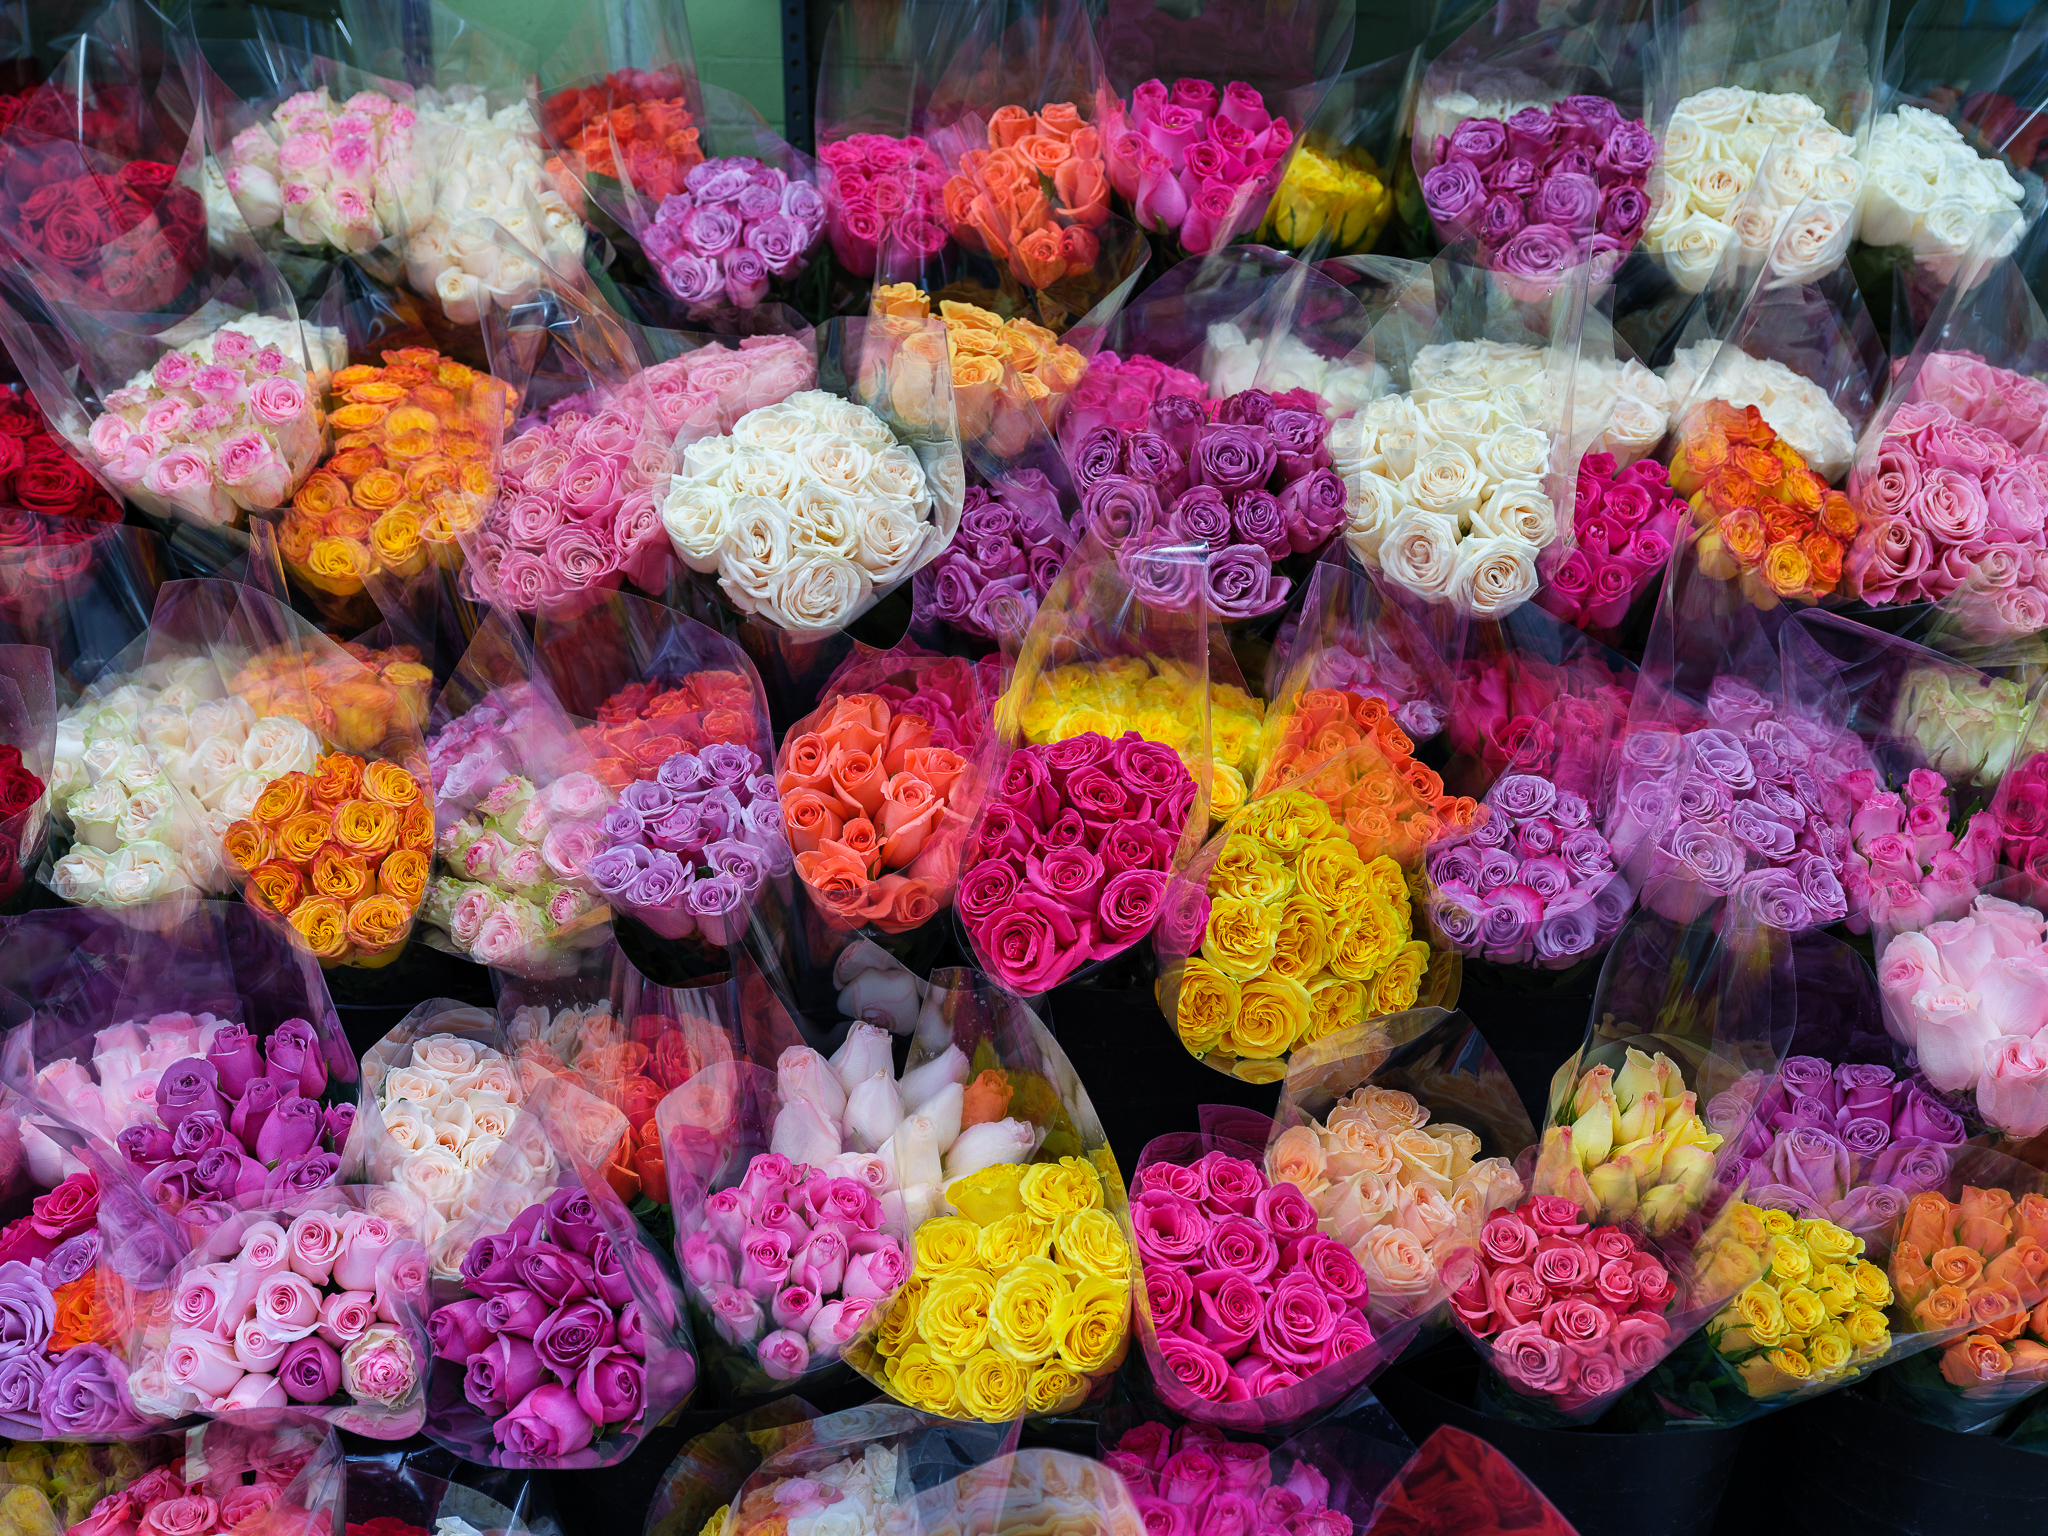 a photo of colorful flowers at a new york deli